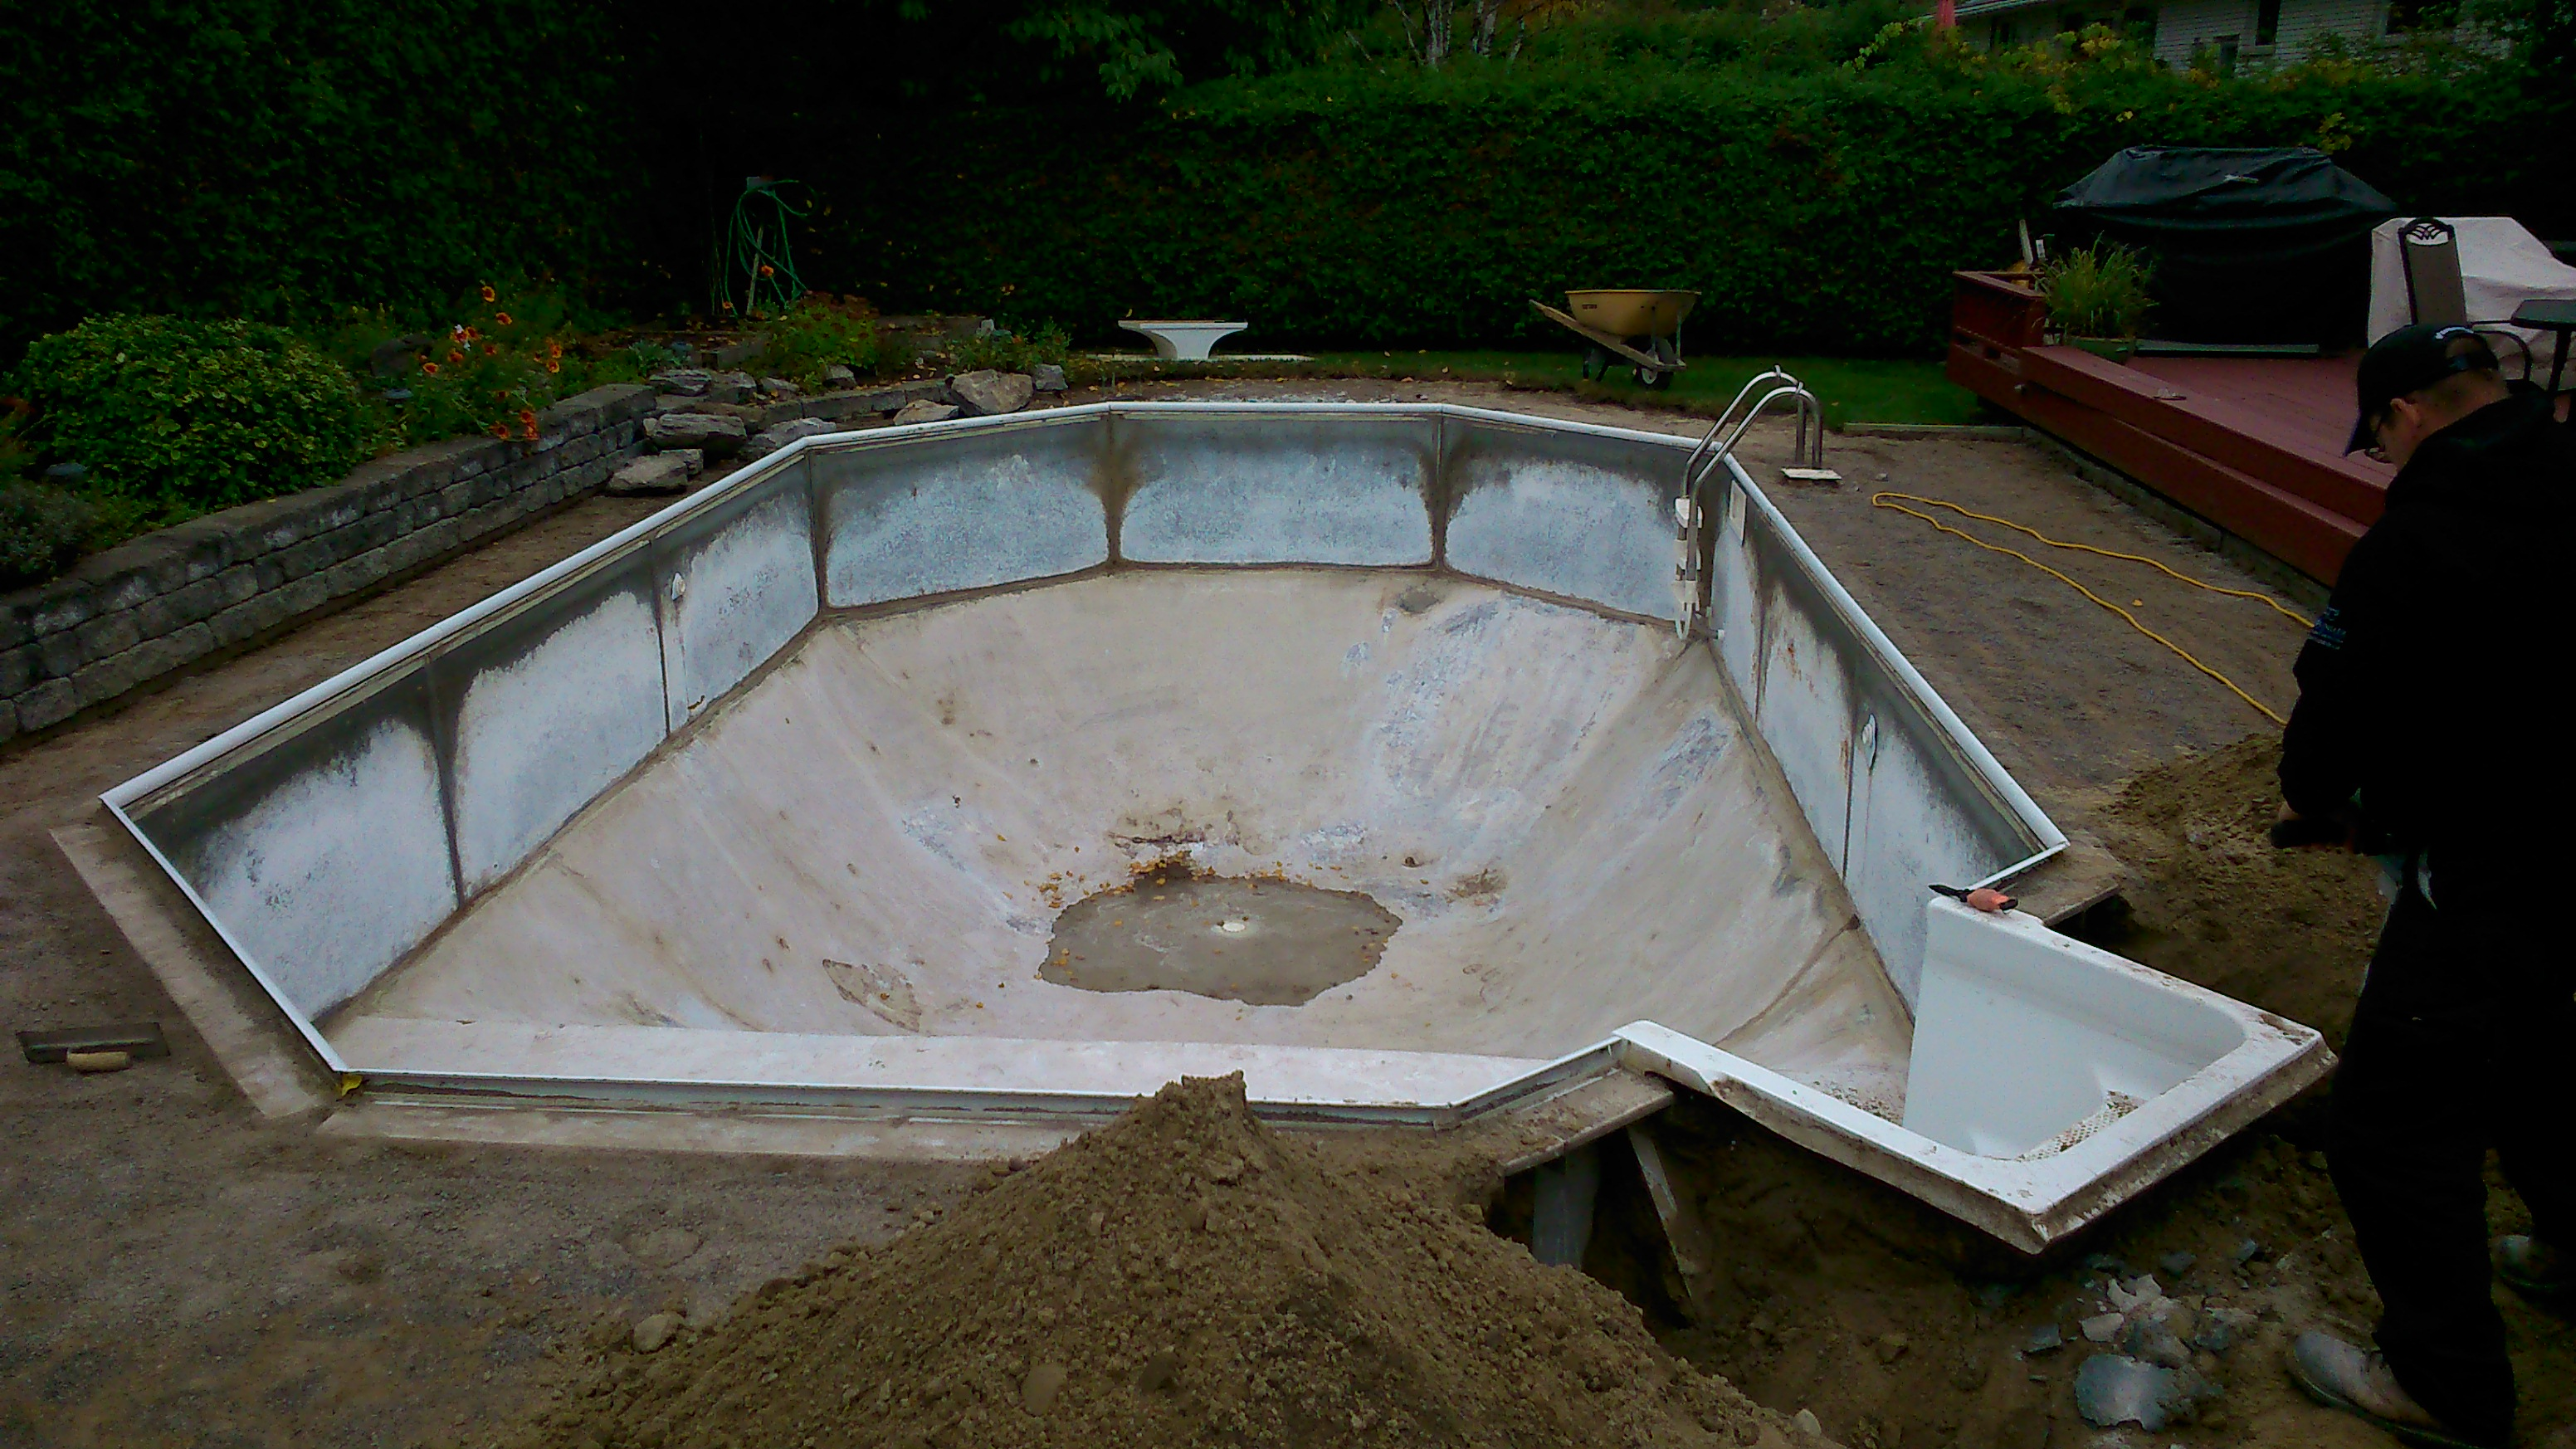 Swimming pool renovations restorations repairs for What to do with old swimming pool